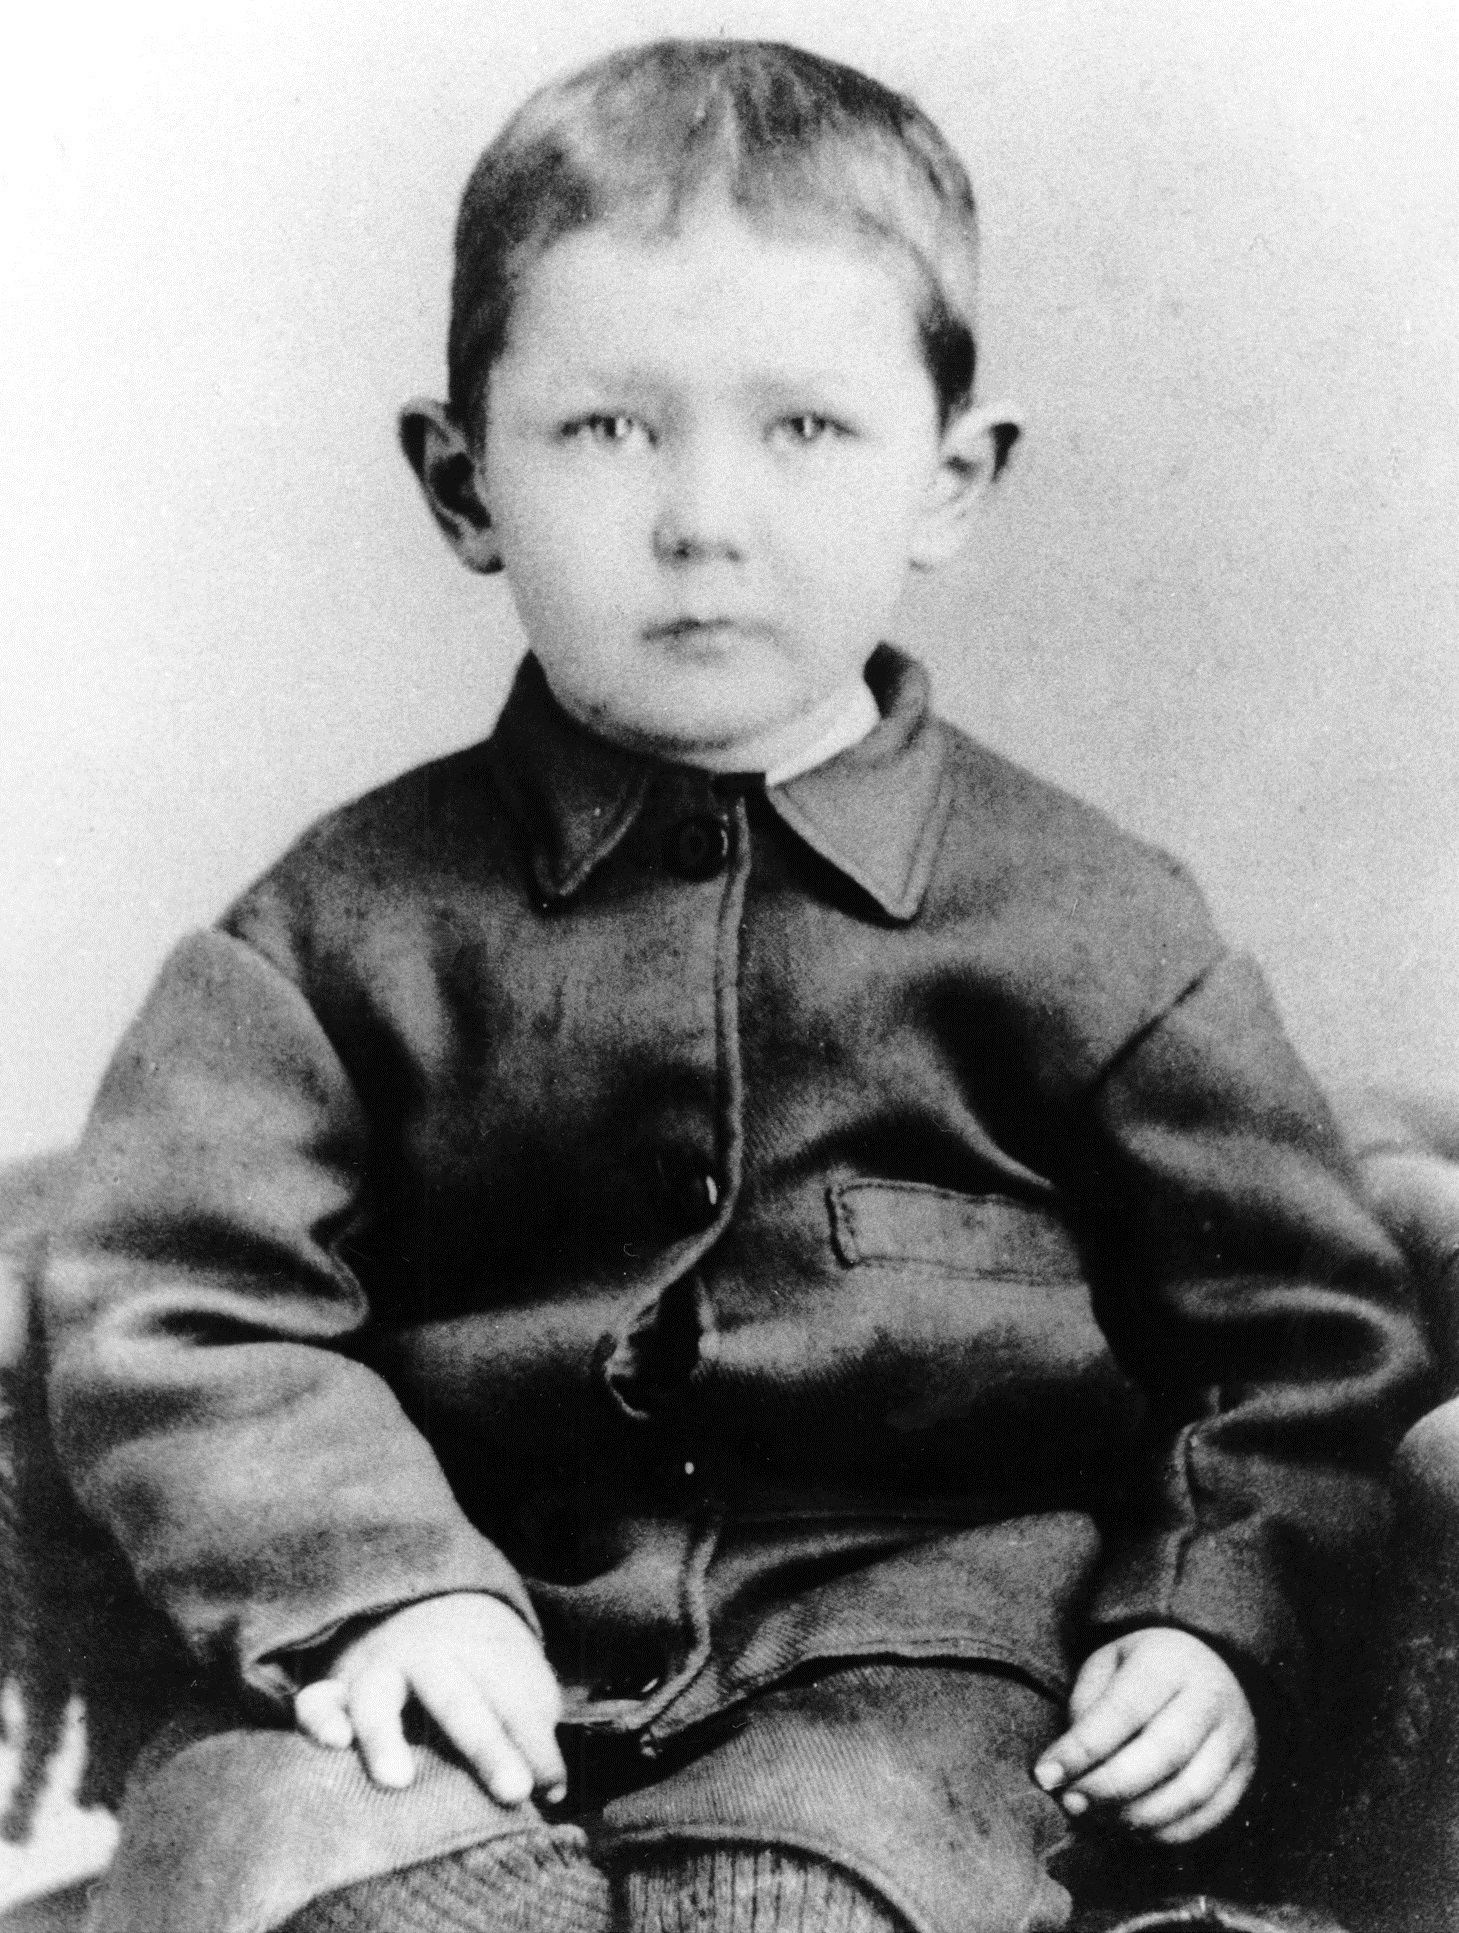 McCrae, at about age four. (Guelph Museums)